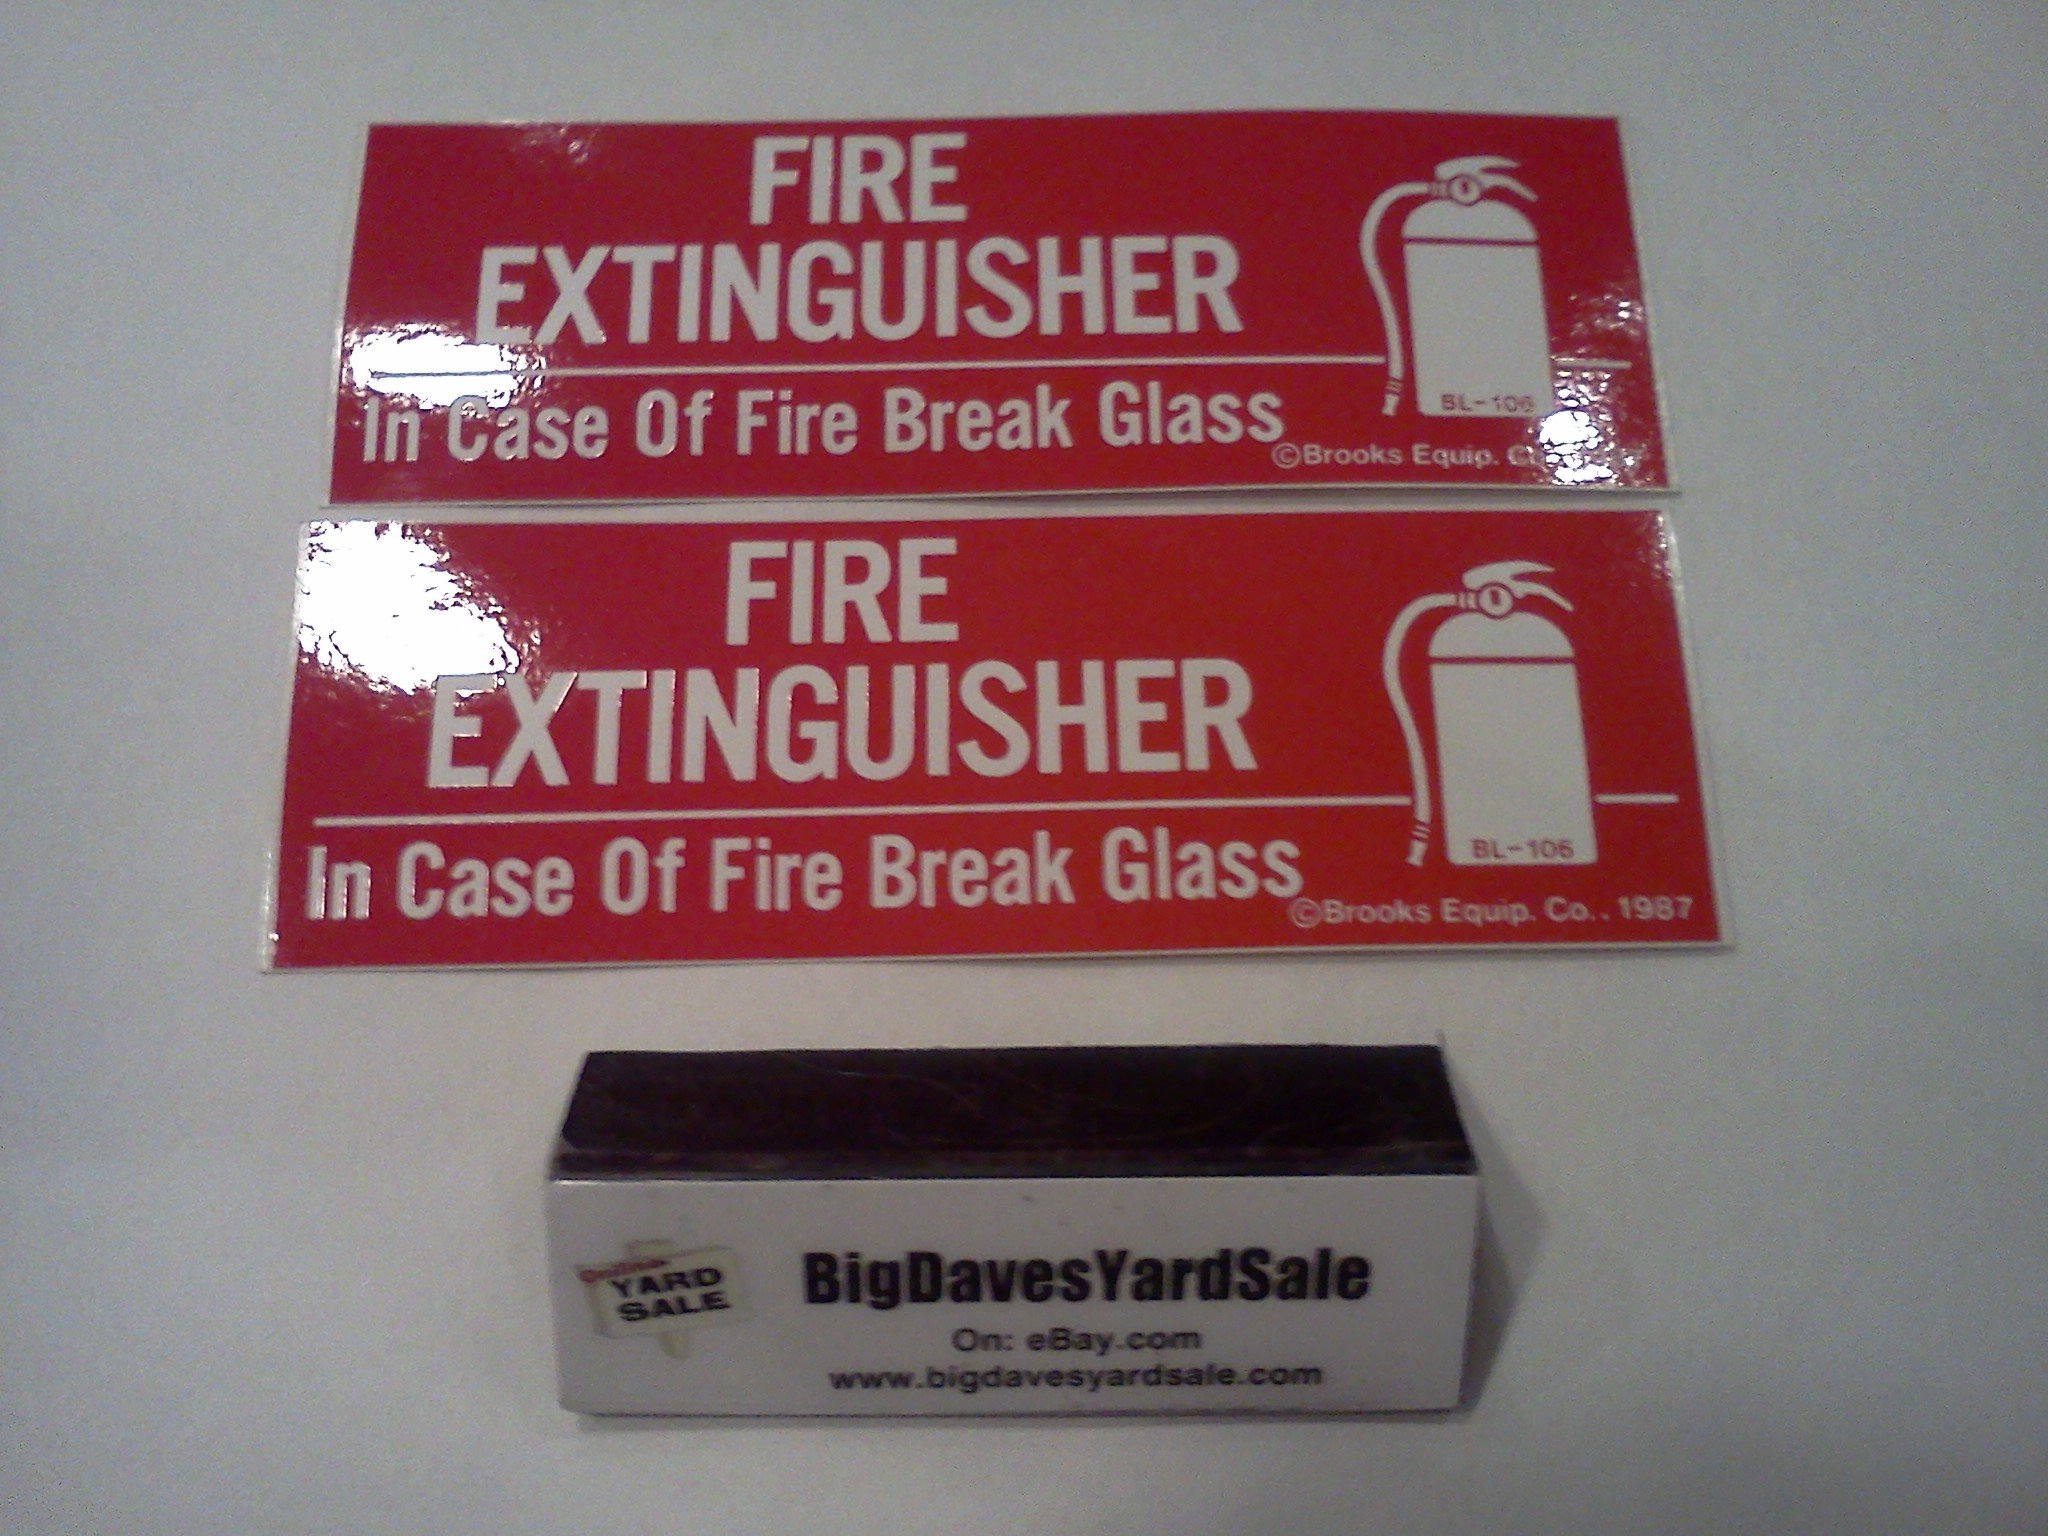 (Lot of 2) 2 1/2 to 5 Lb. Samson Fire Extinguisher Cabinet With Cylinder Lock and Breaker Bar + 2 - IN CASE OF FIRE BREAK GLASS, Self-Adhesive 2''x6'' Signs